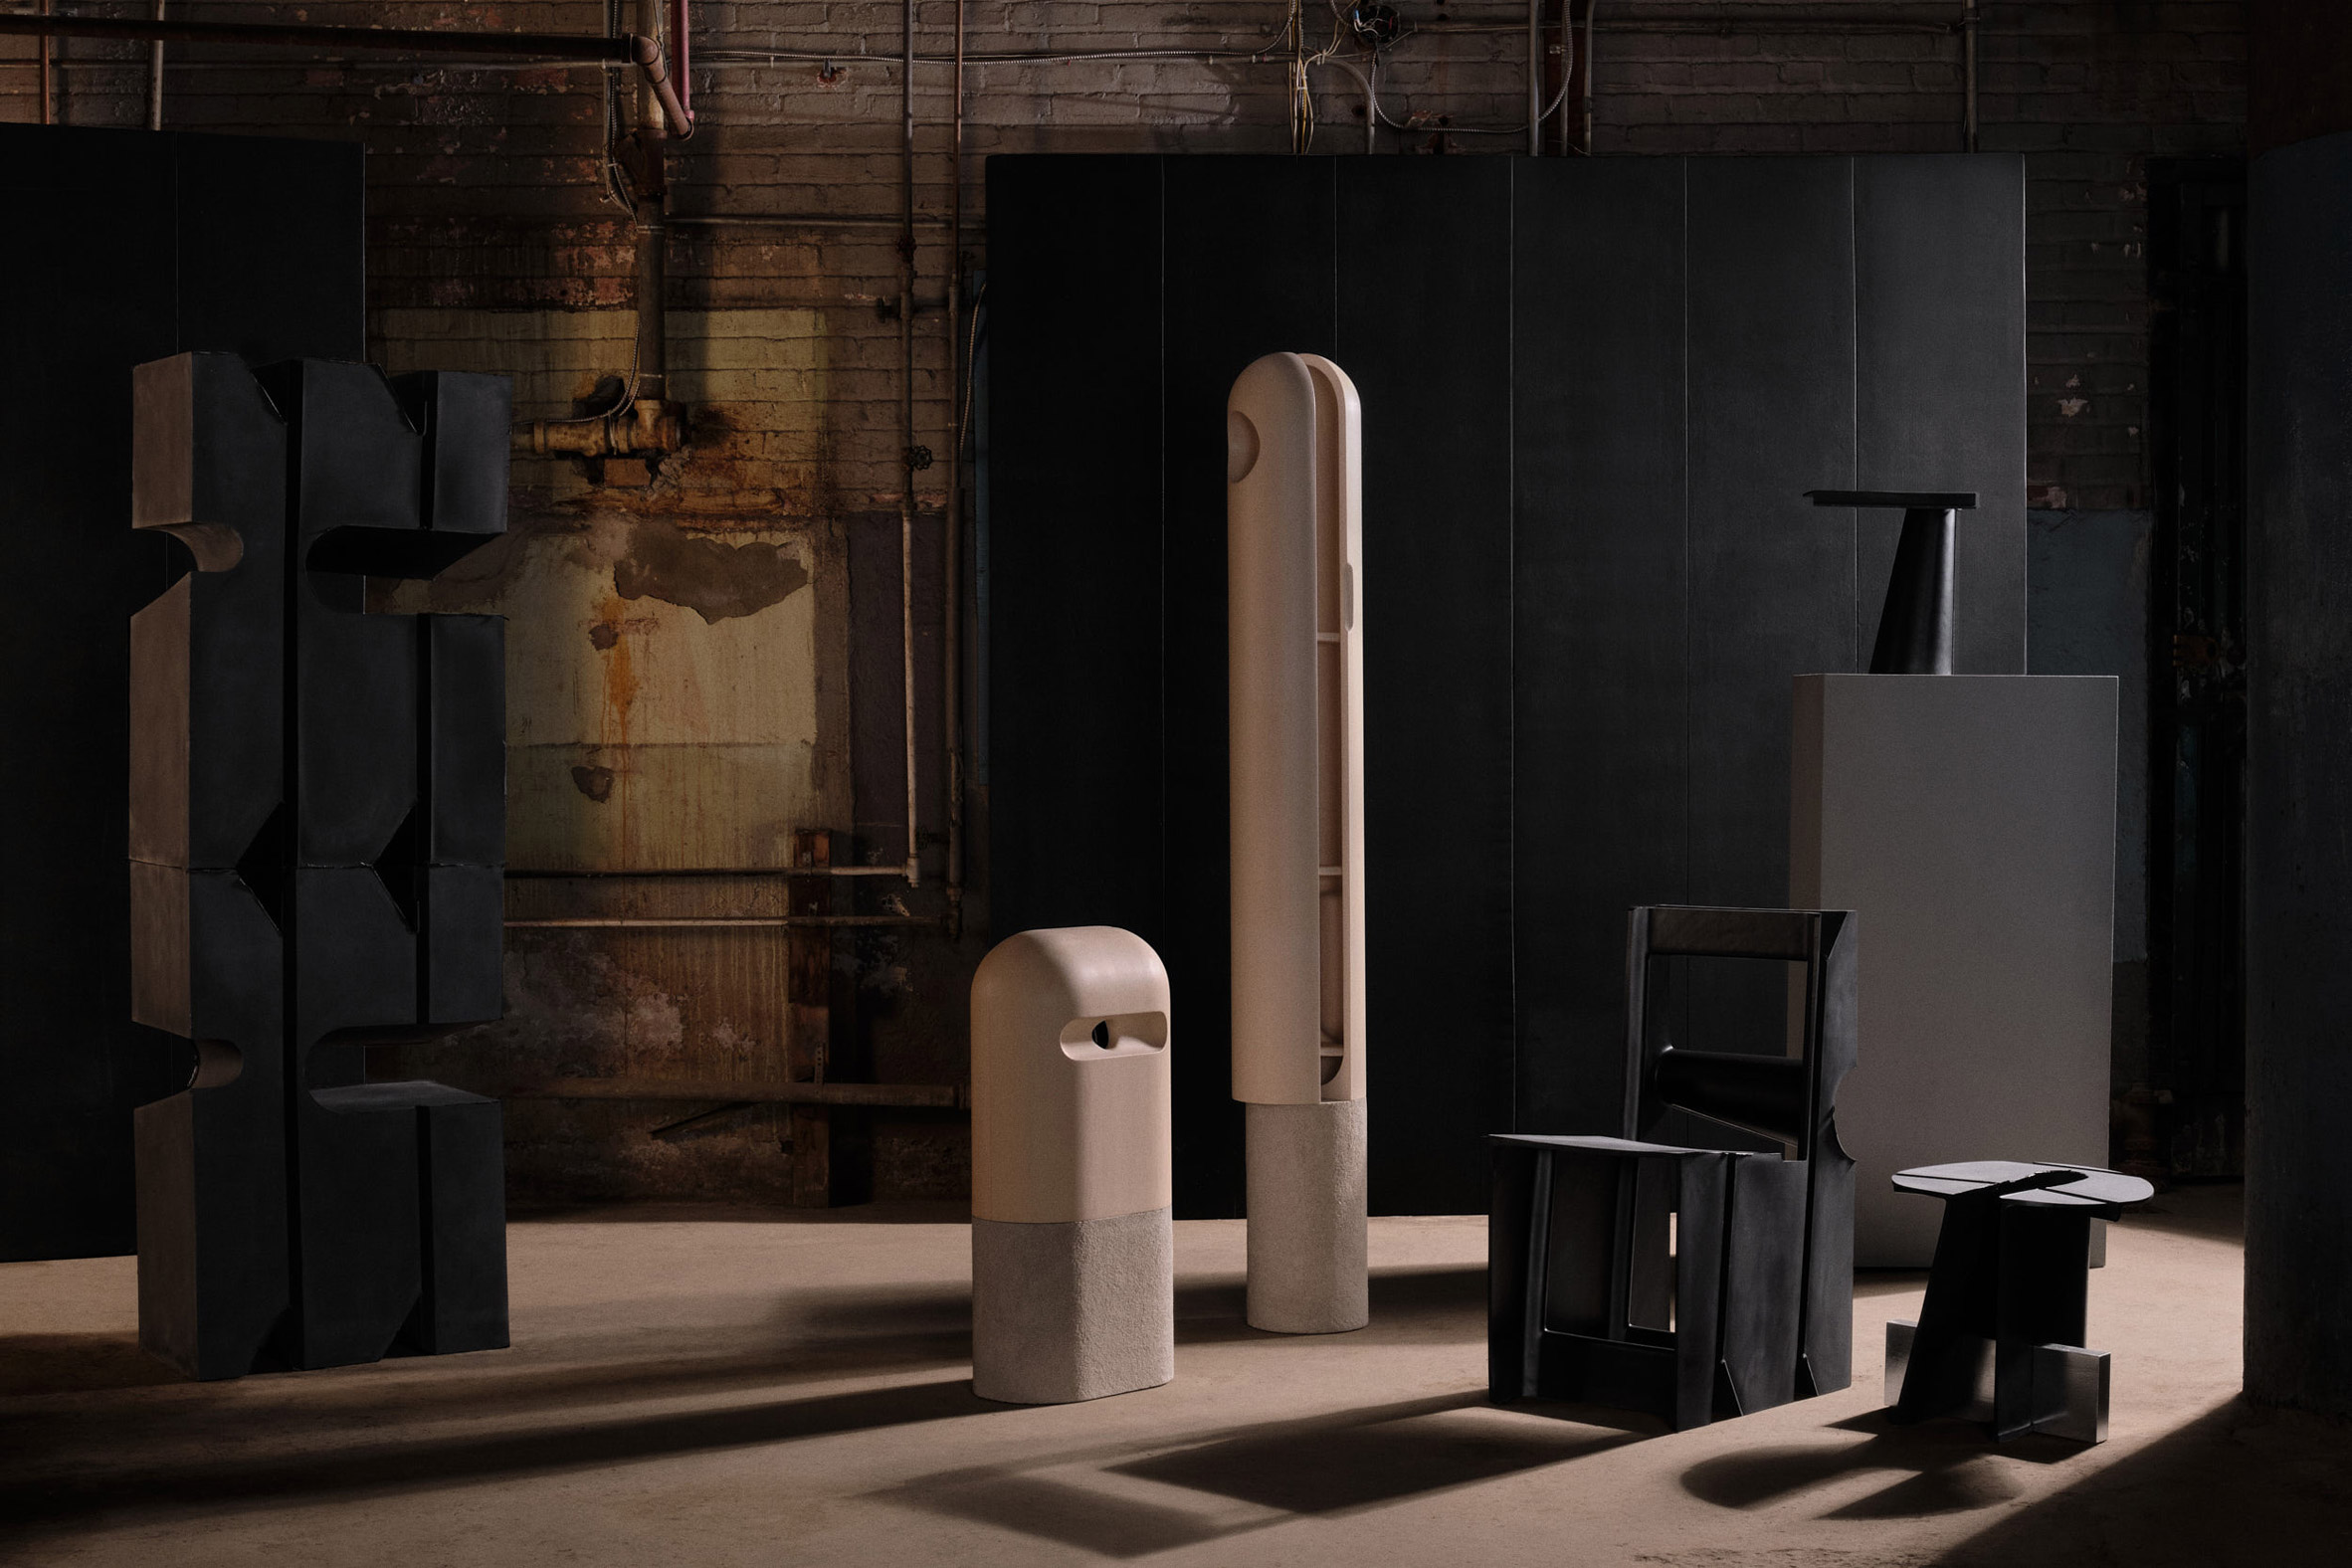 Sculptural stone cabinets